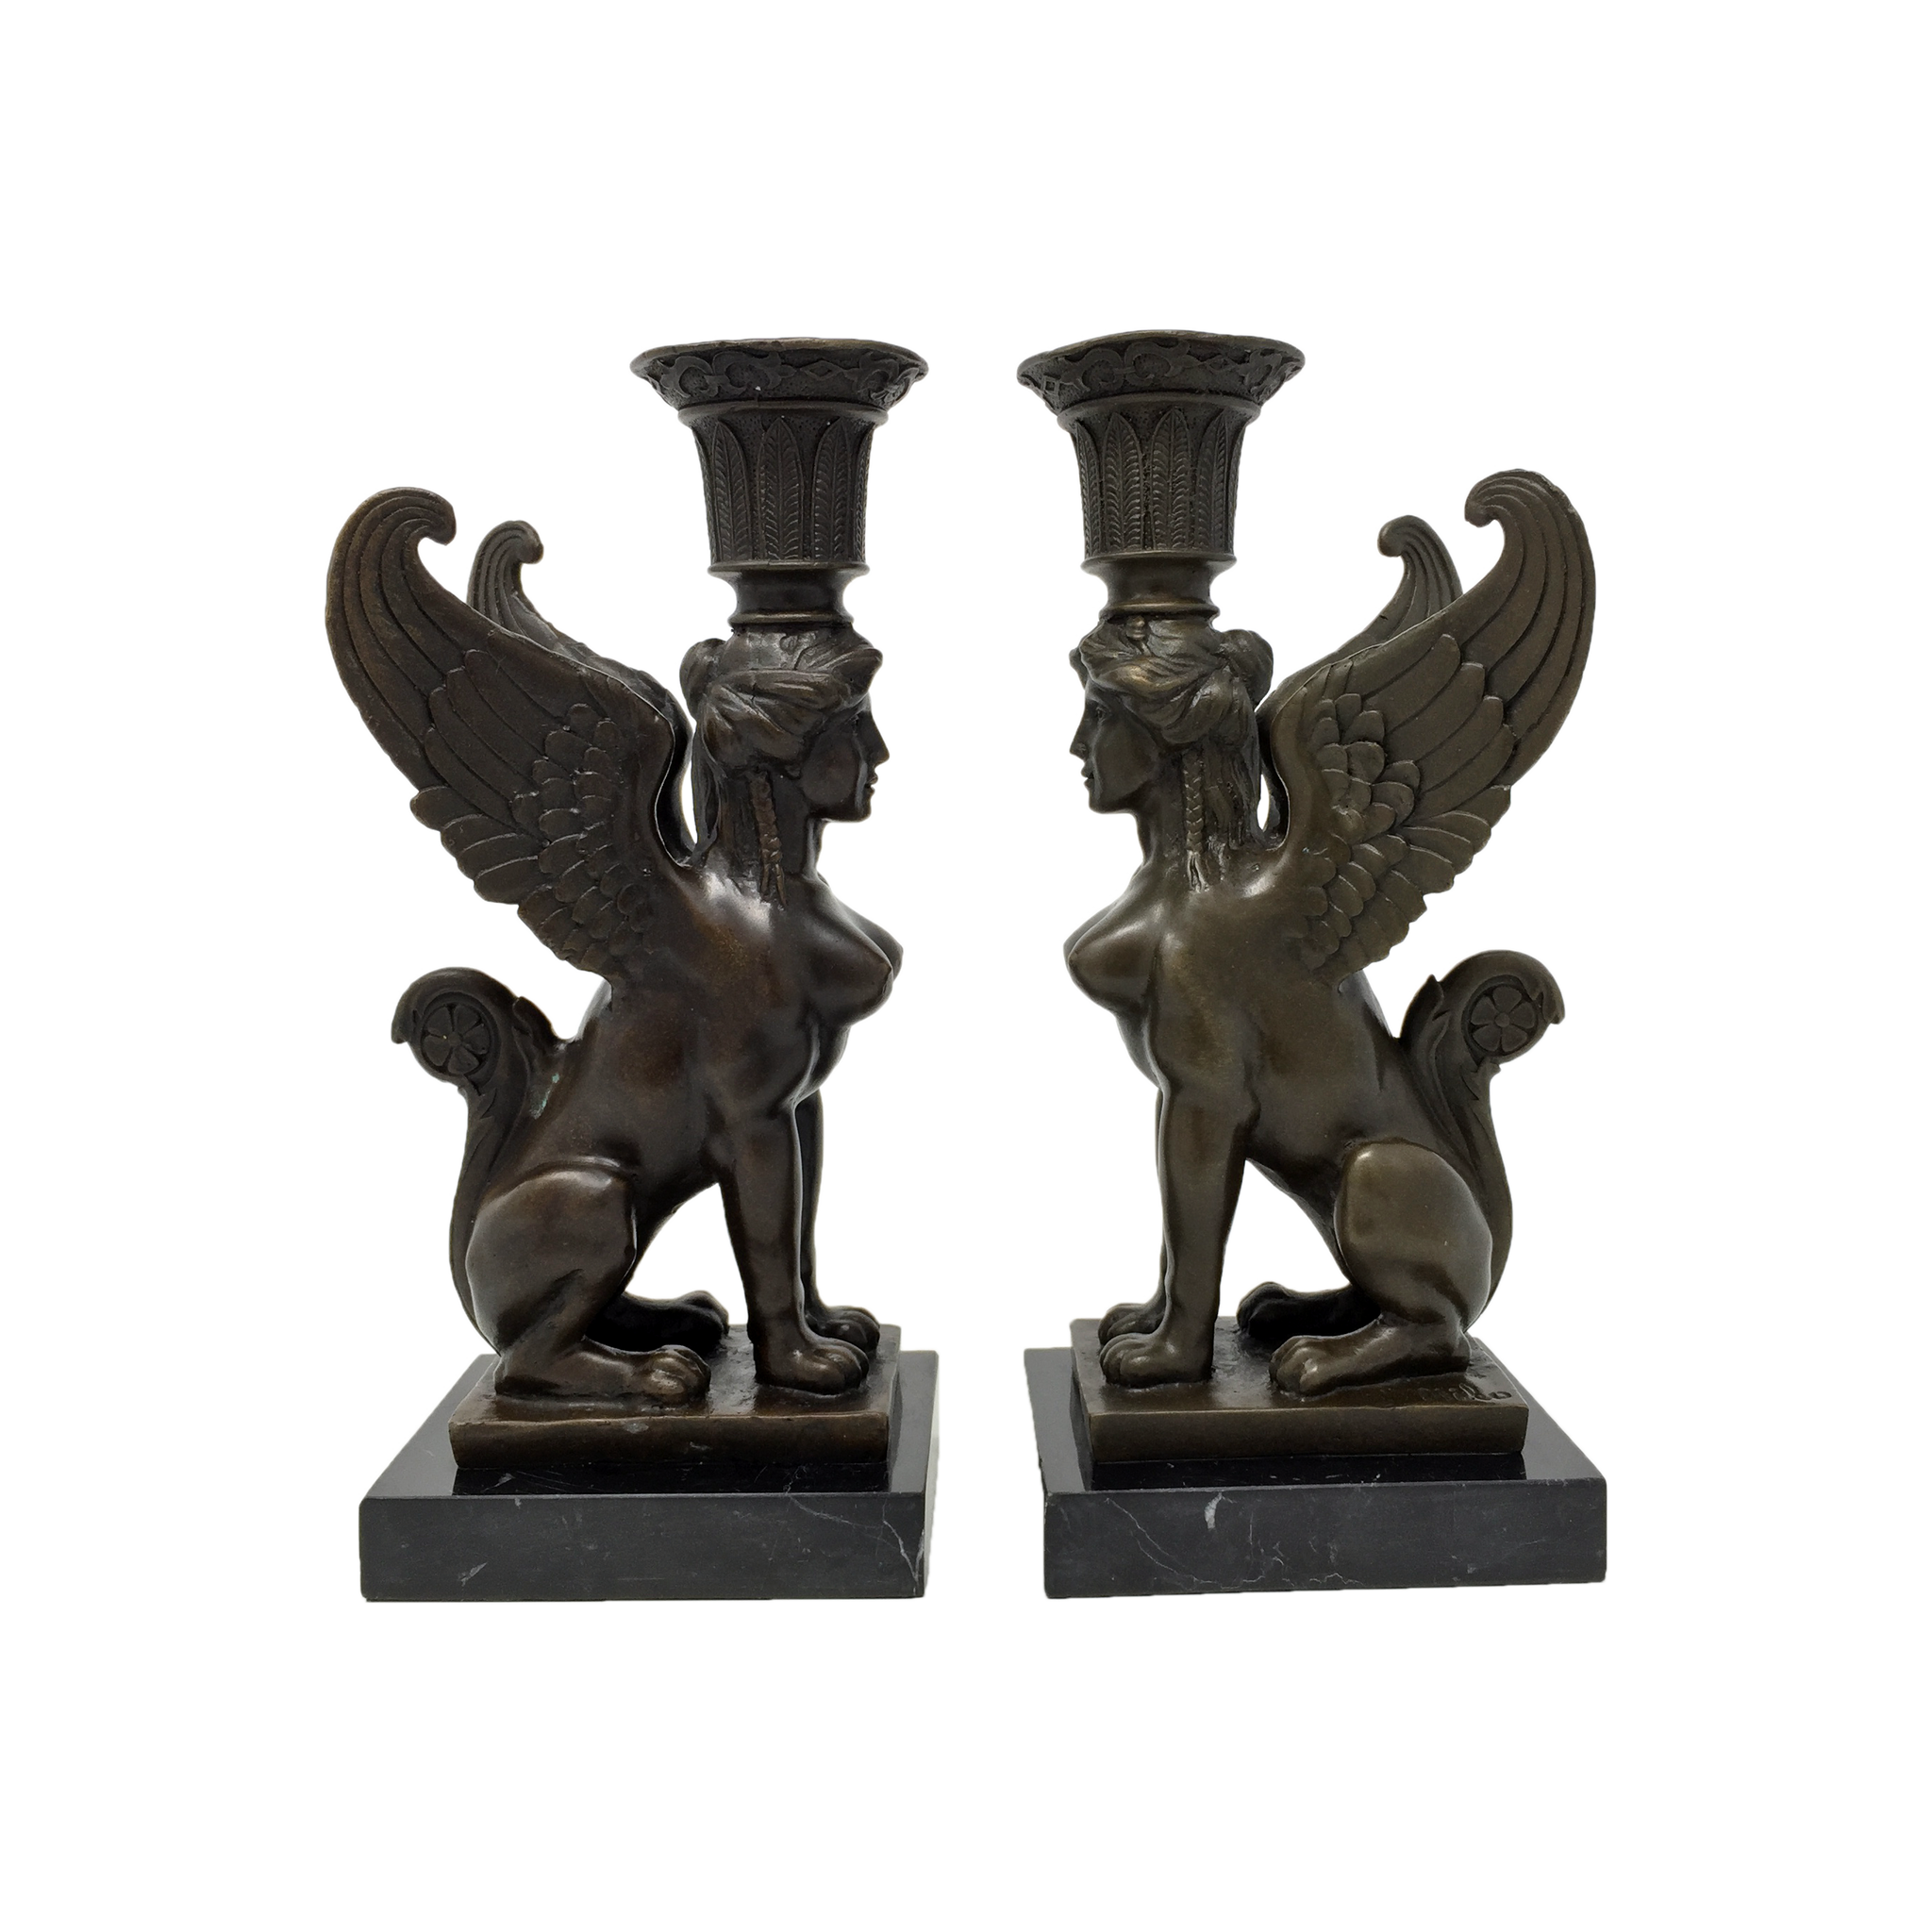 Vintage Egyptian revival bronze sphinx candlesticks by Milo